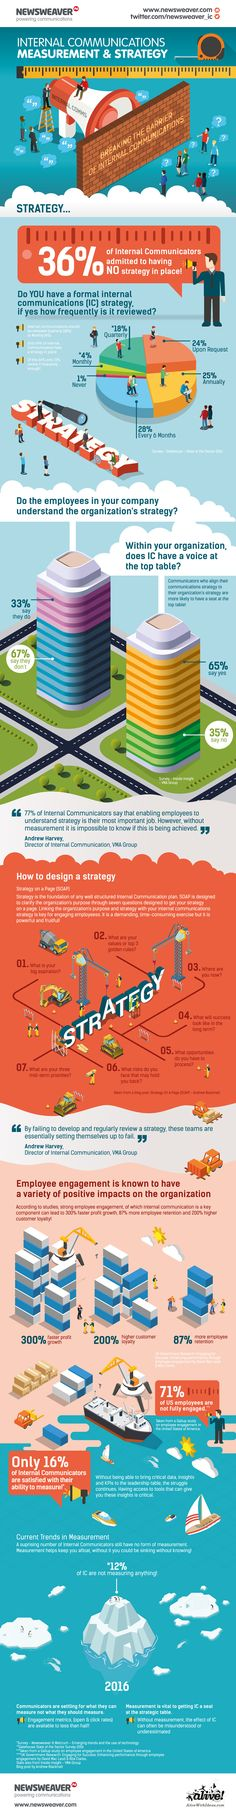 [Infographic] Using Strategy To Break The Barriers To Internal Communication